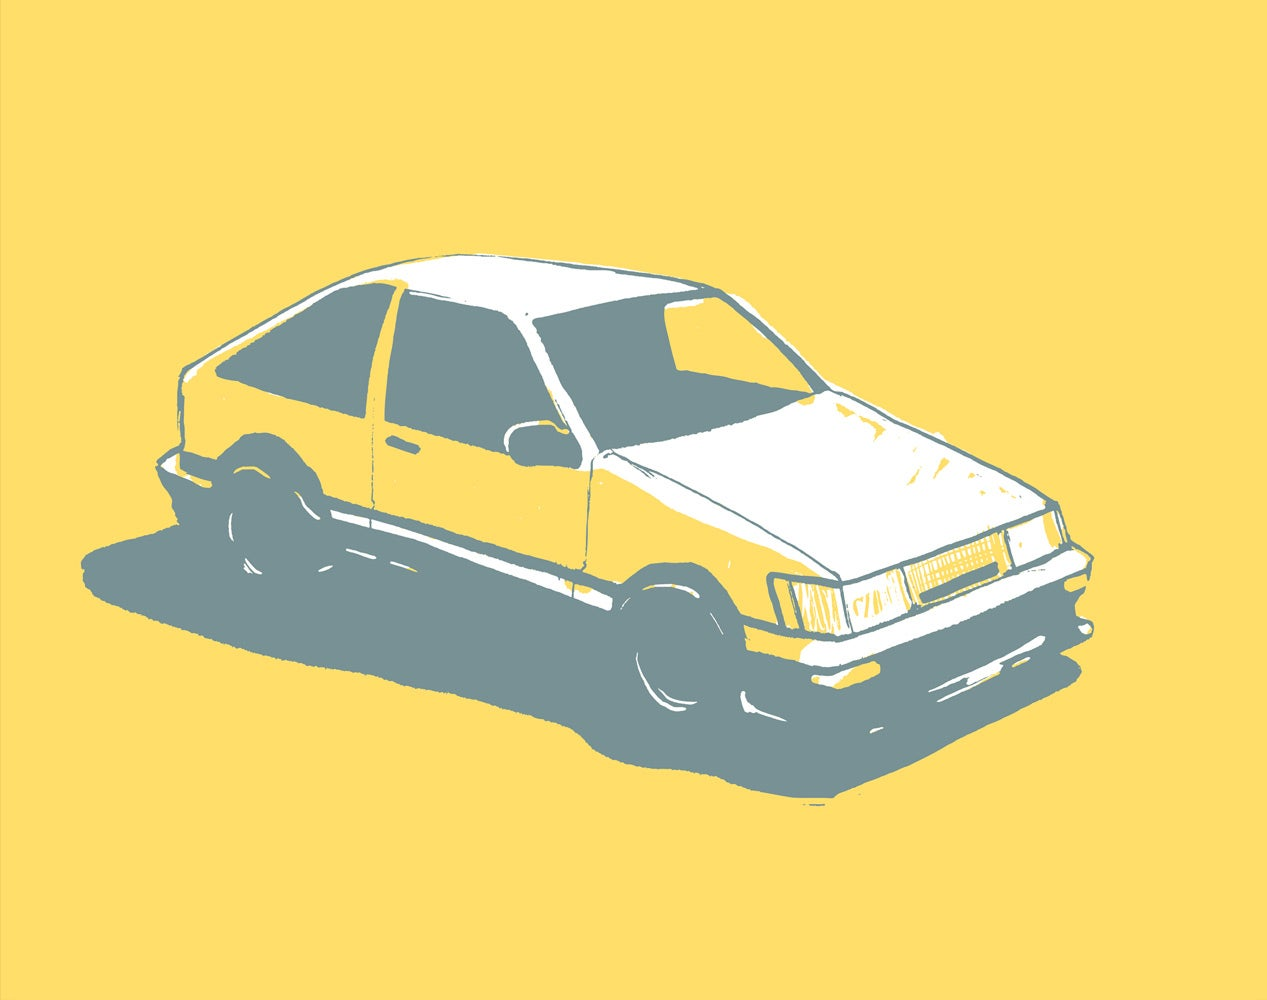 Image of AE86